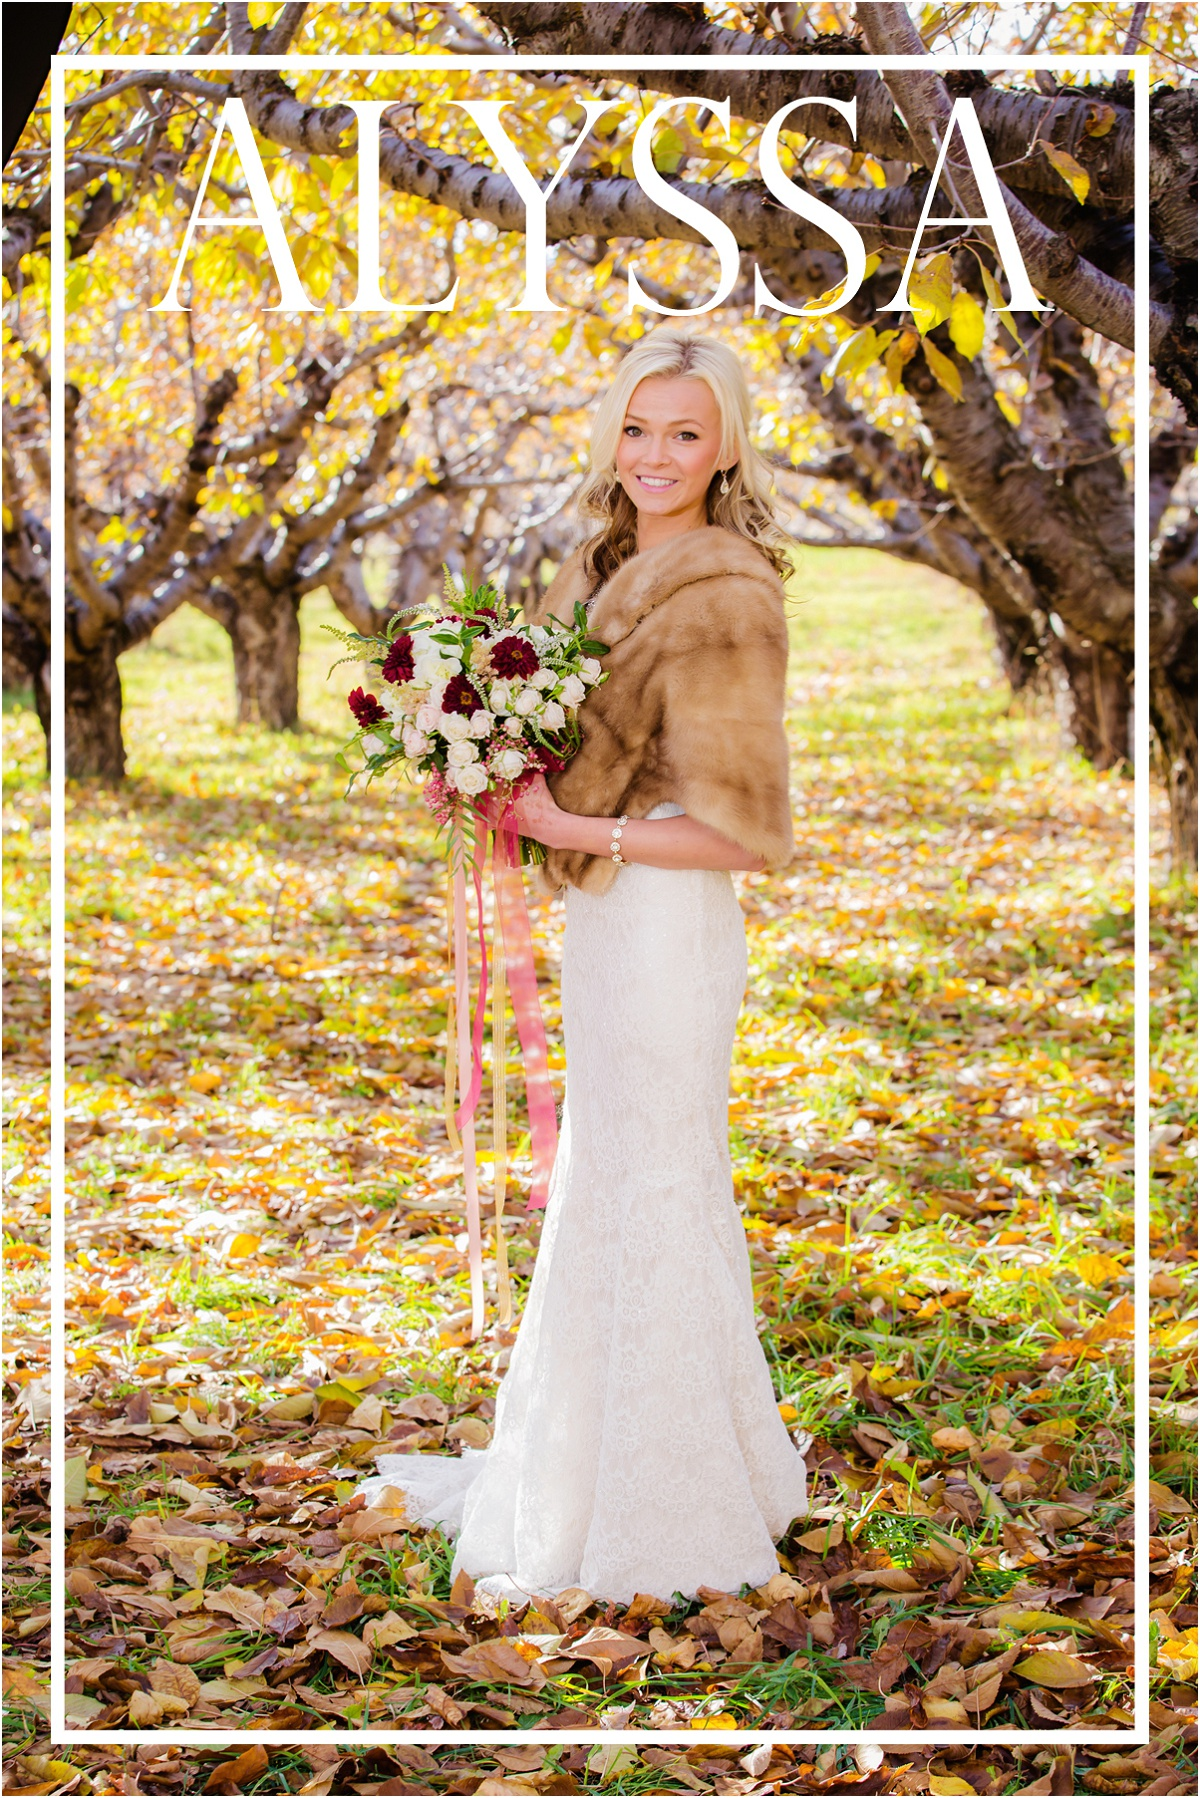 Terra Cooper Photography Weddings Brides 2015_5383.jpg